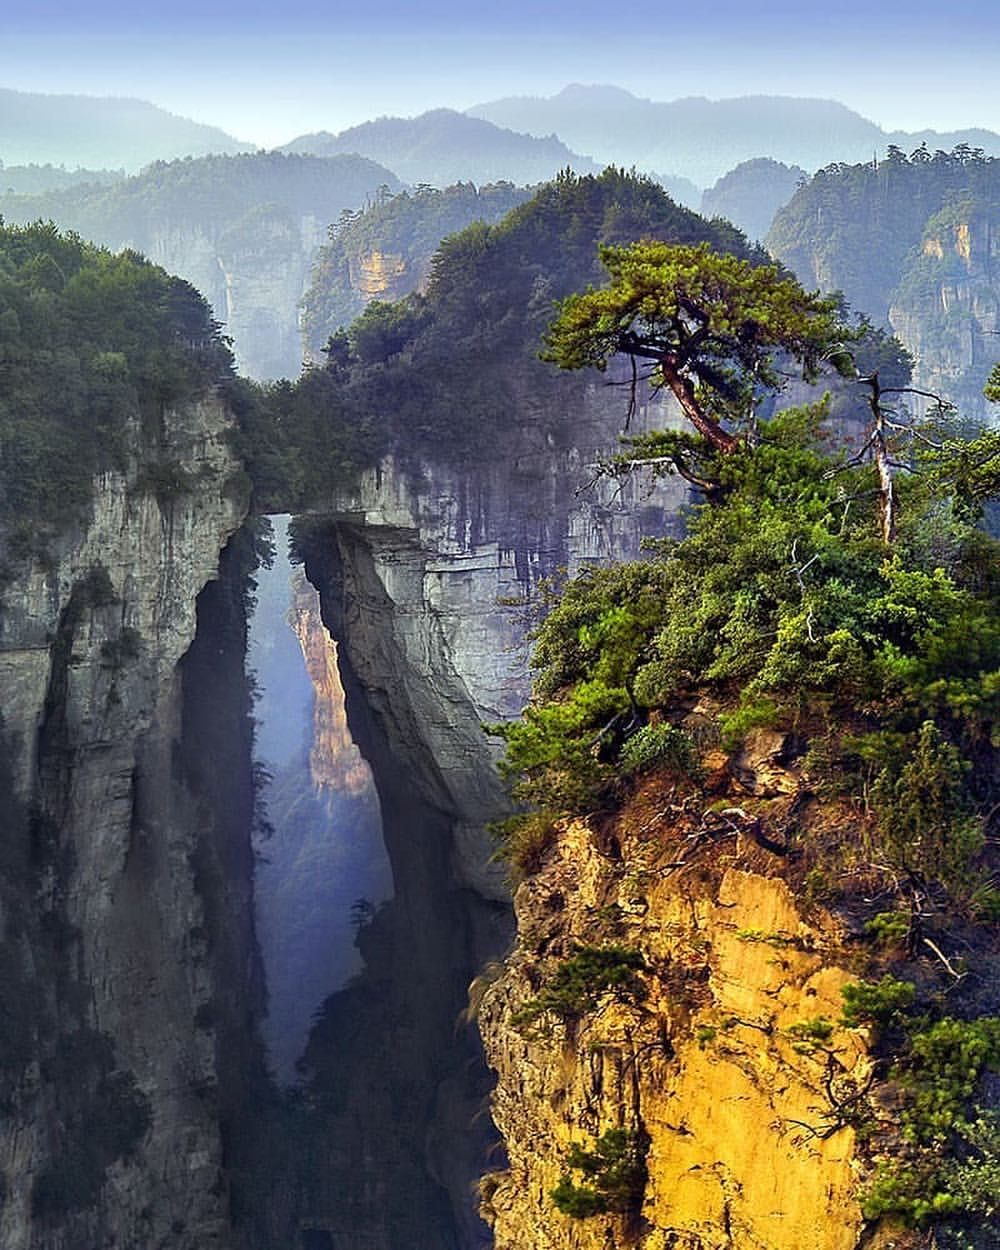 Unique Landscape Of Zhangjiajie National Forest Photo By Allapetropavlovska Nature Forest Photos Beautiful Nature